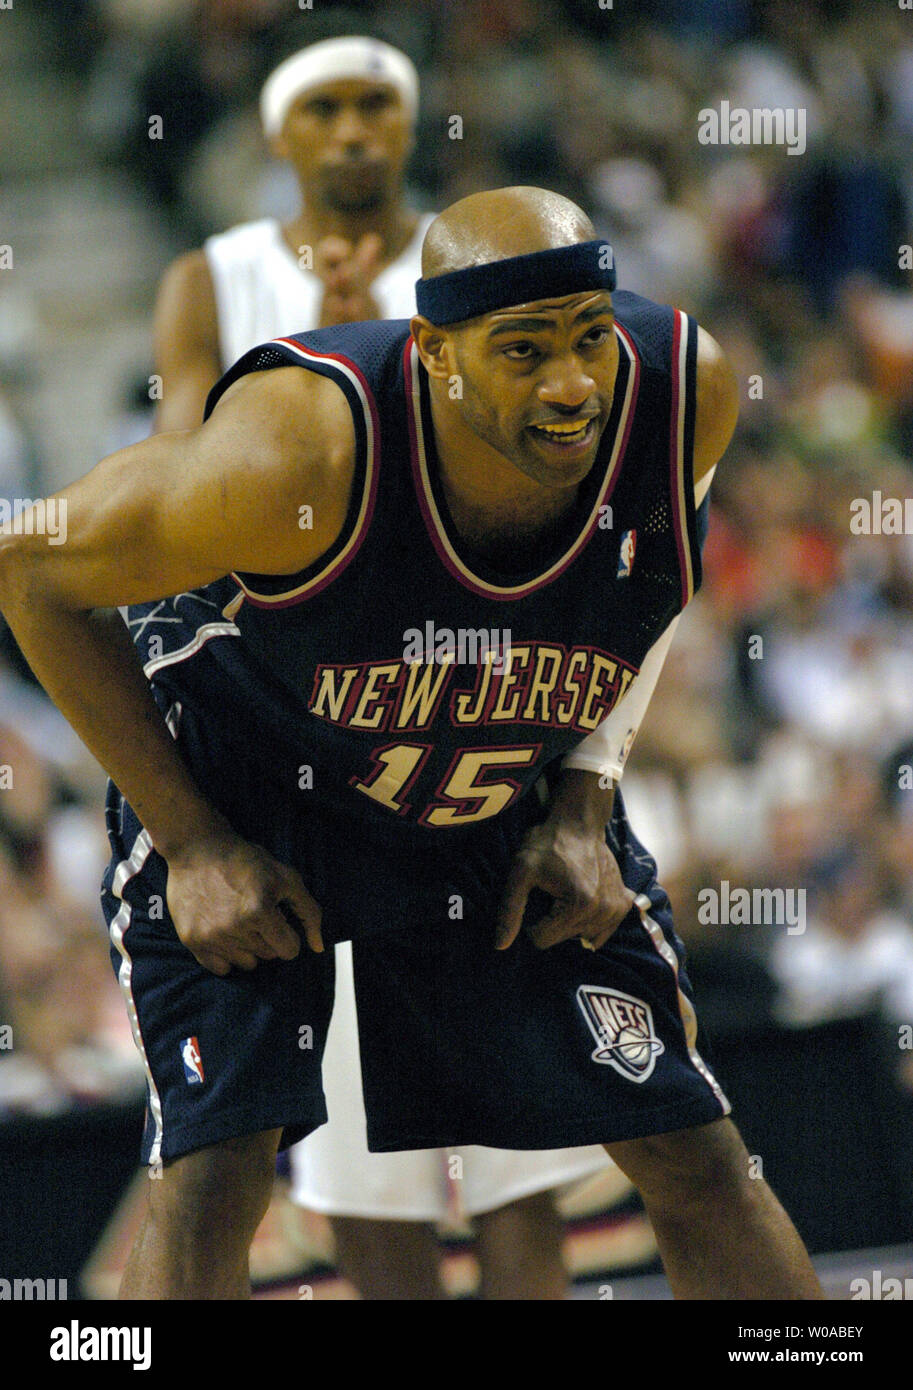 wholesale dealer 15959 b9c76 New Jersey Nets' Vince Carter hunkers down as Toronto ...